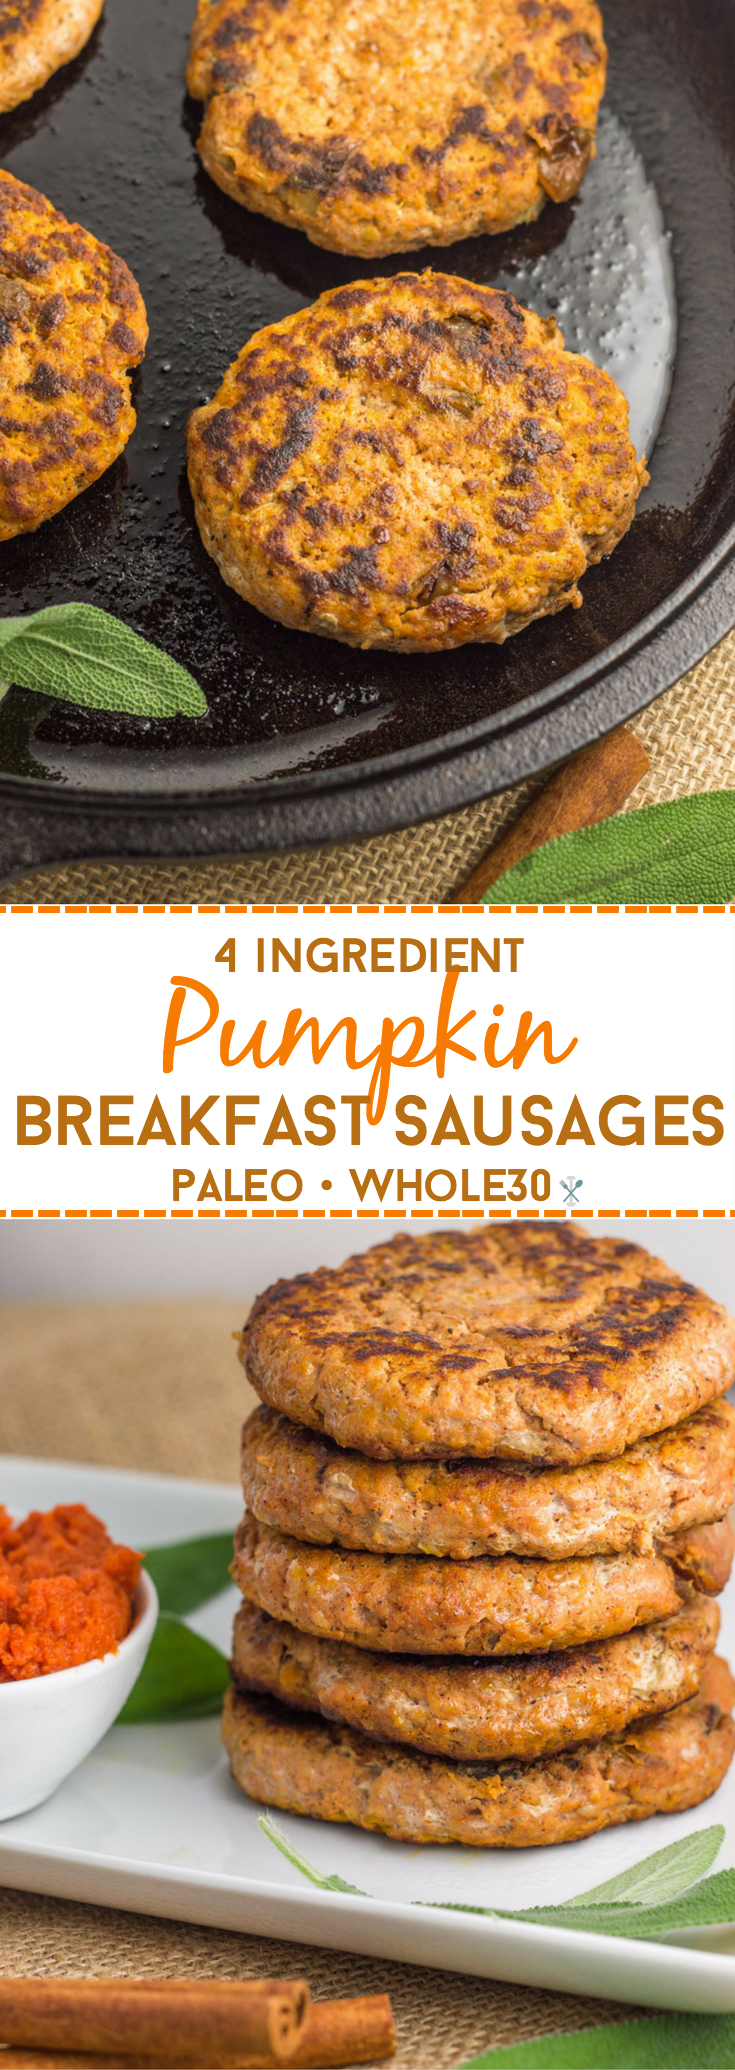 A Whole30 eggless breakfast - these 4 ingredient breakfast sausage patties have a savory pumpkin finish you'll be addicted to! So easy, squeaky clean, and freezer-friendly